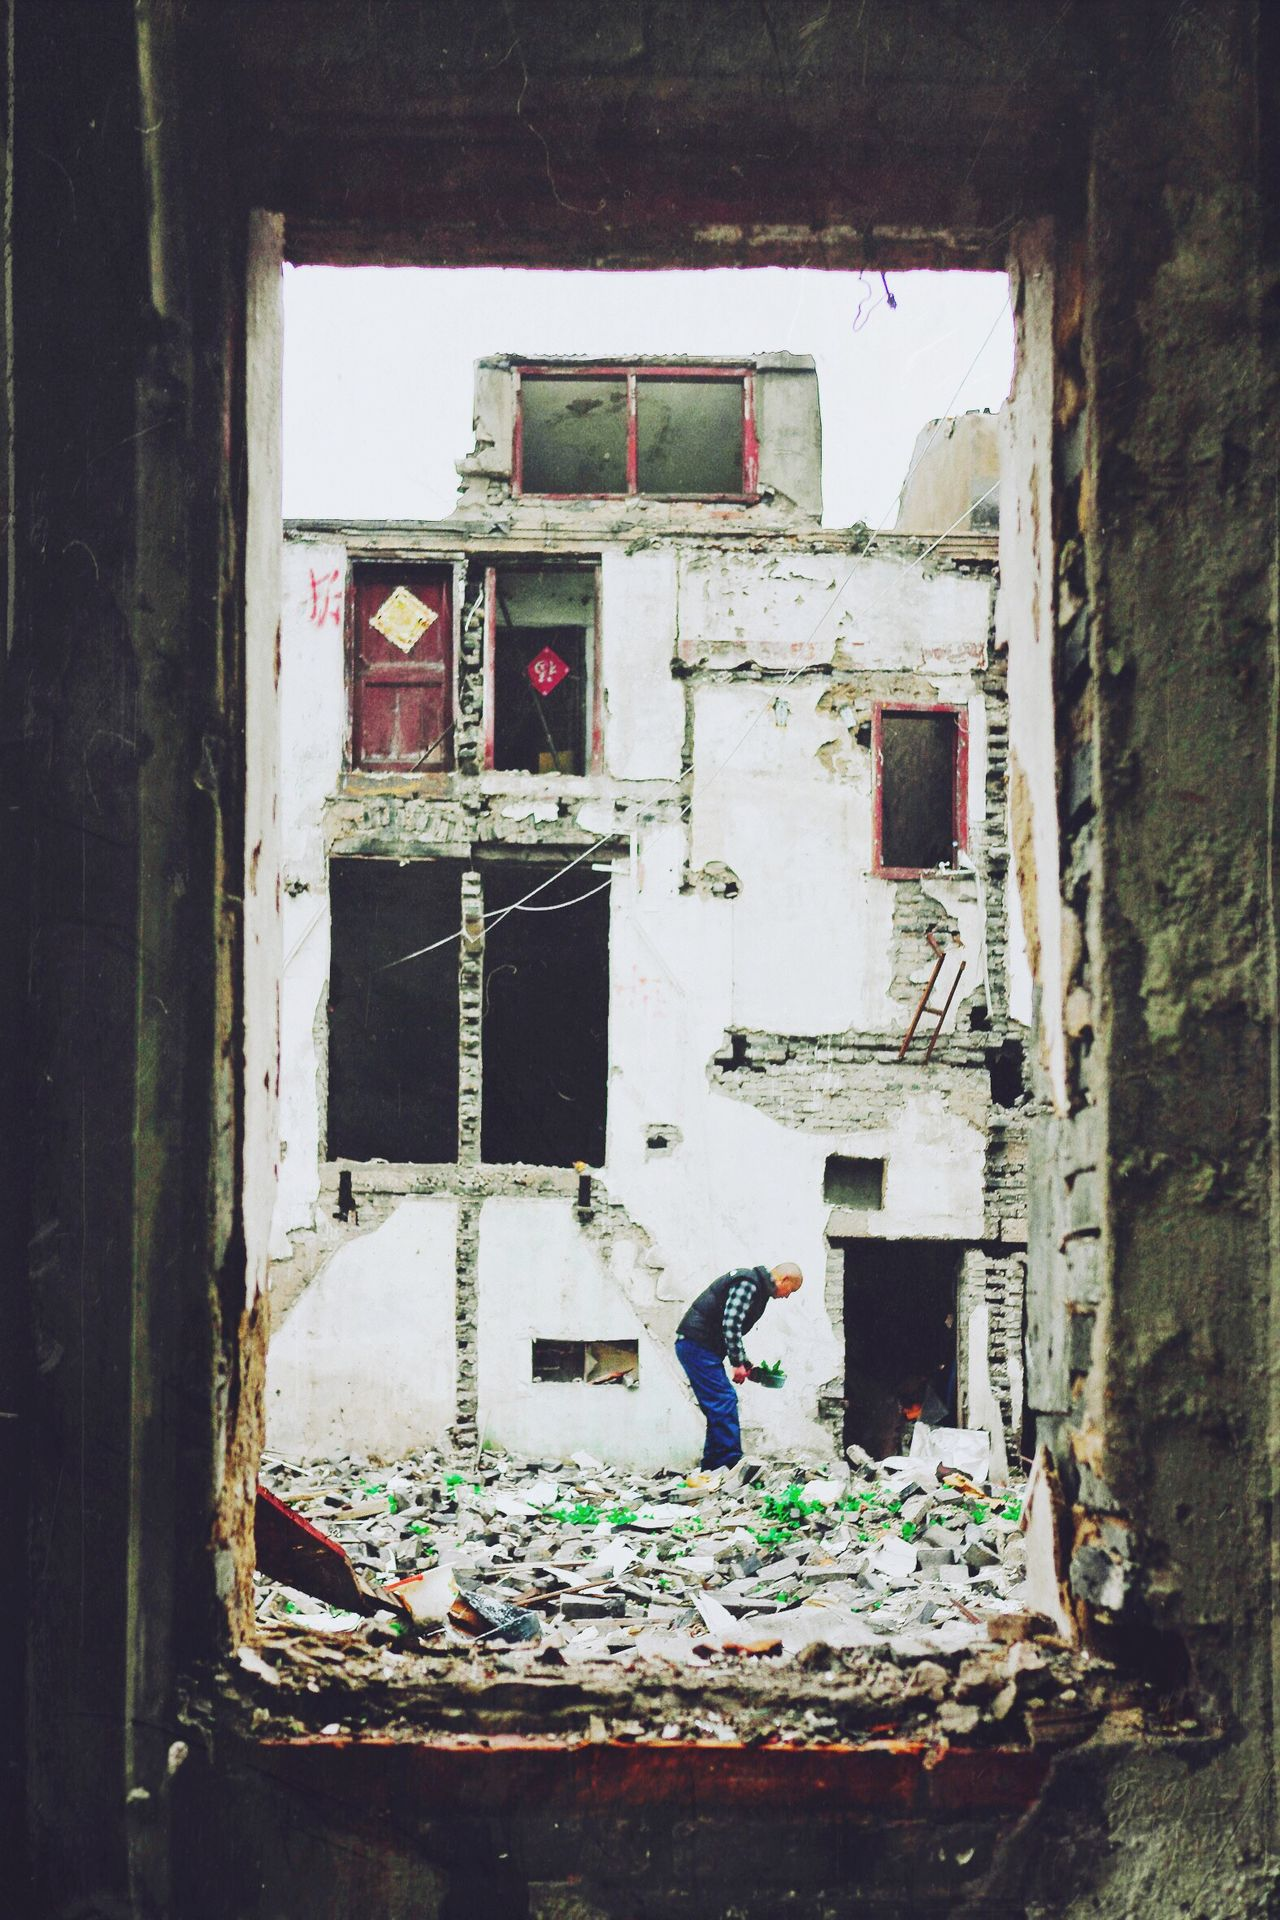 EyeEmNewHere His home The Ruins Frame Composition Old Man Les Misérables Deserted Building Abandoned House Shanghai China